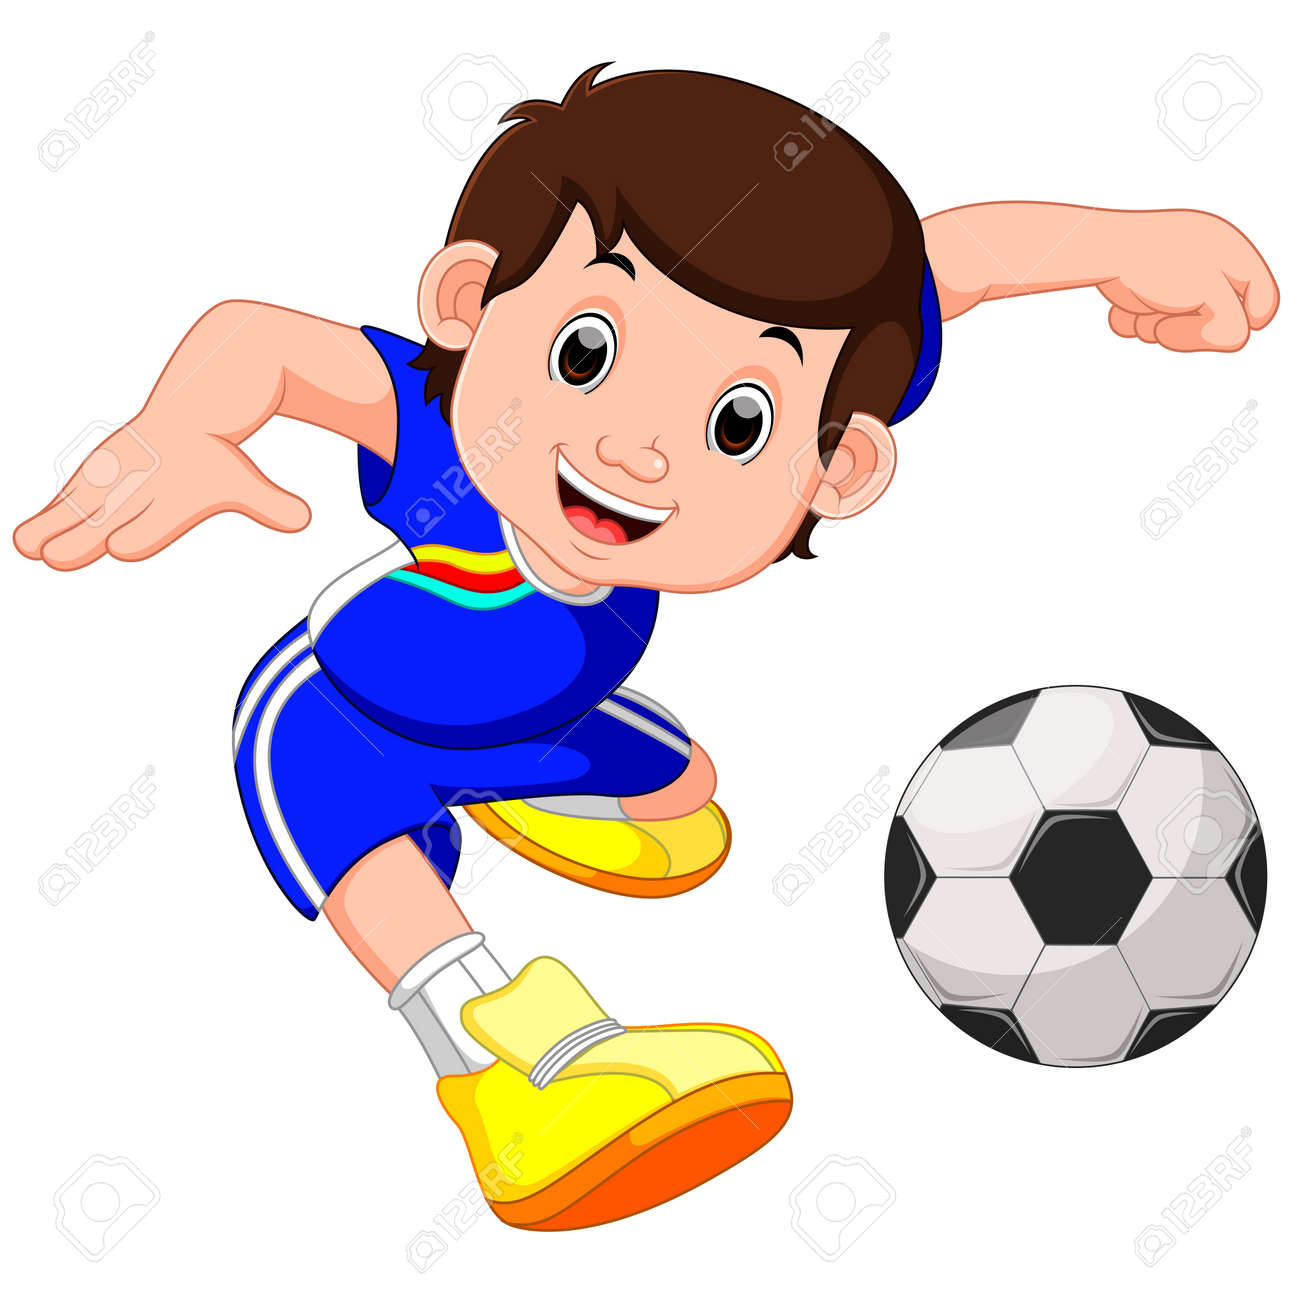 Boy Cartoon Playing Football Stock Photo Picture And Royalty Free Image Image 77463896